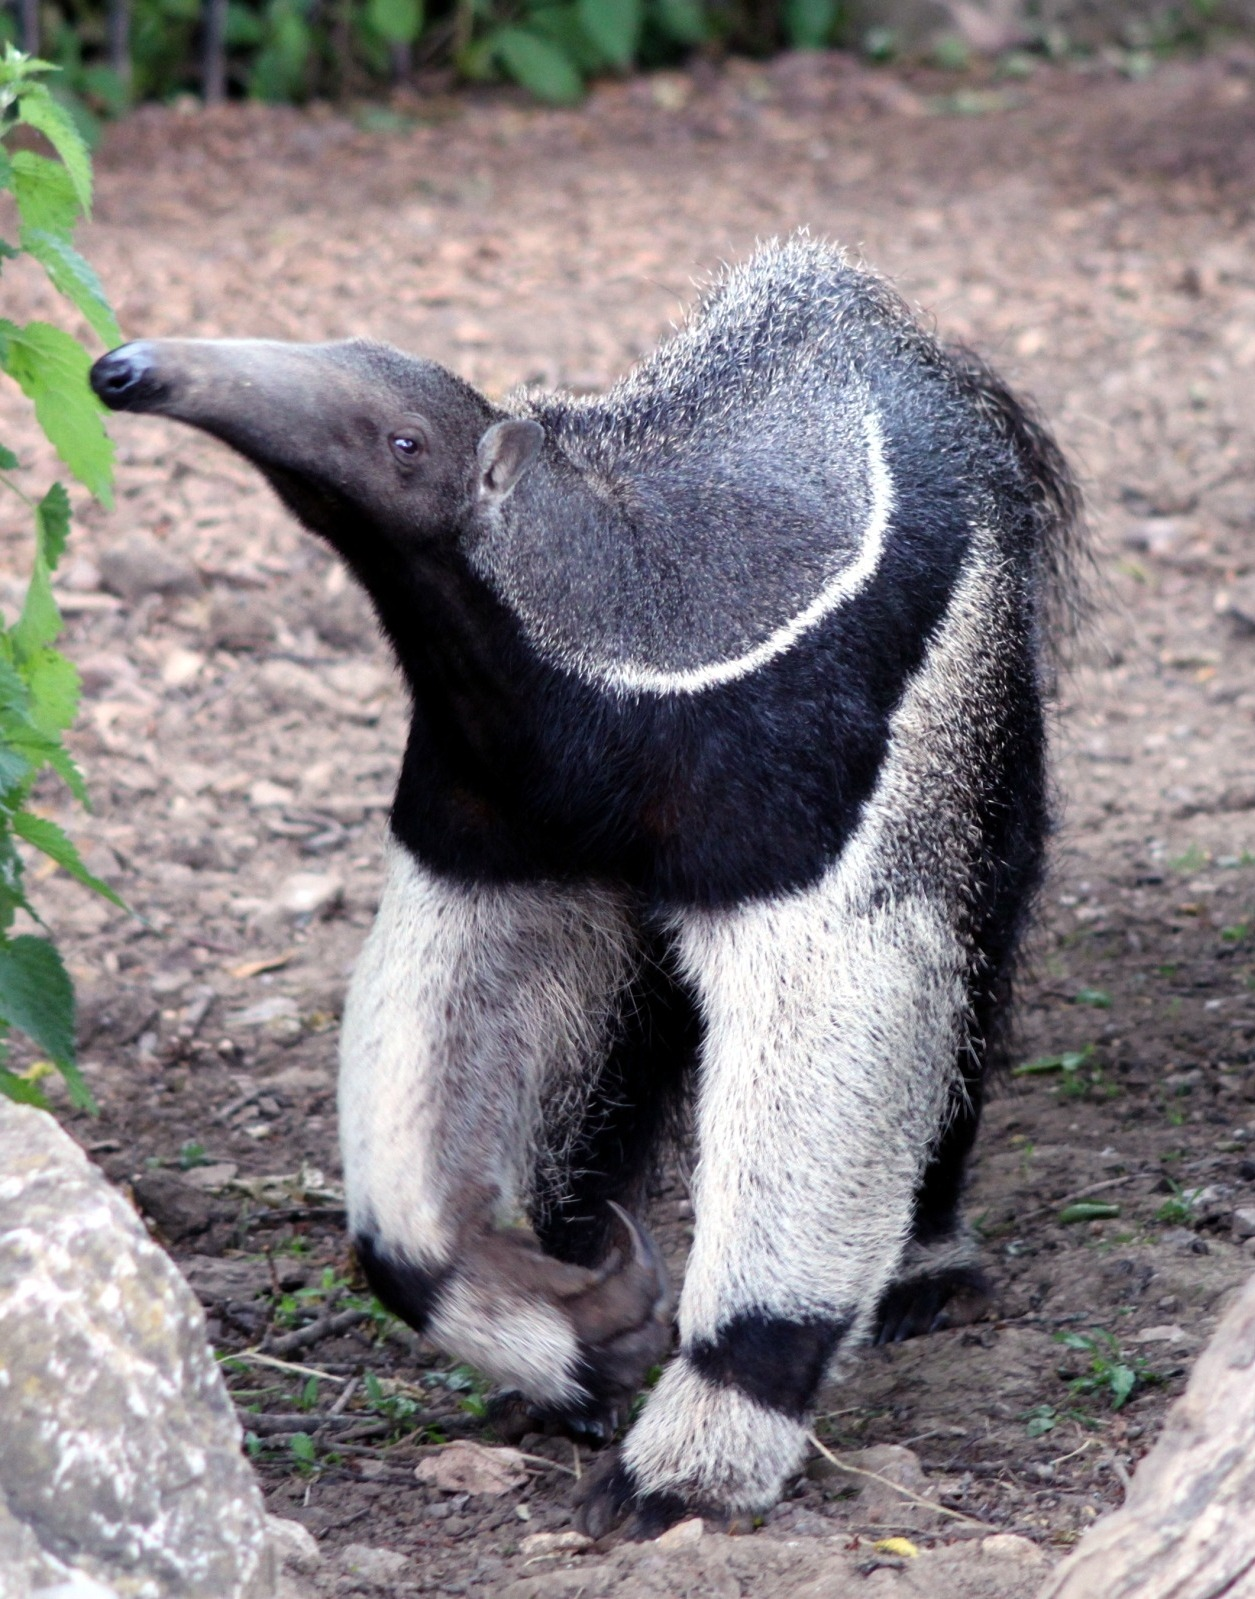 Picture of an anteater.